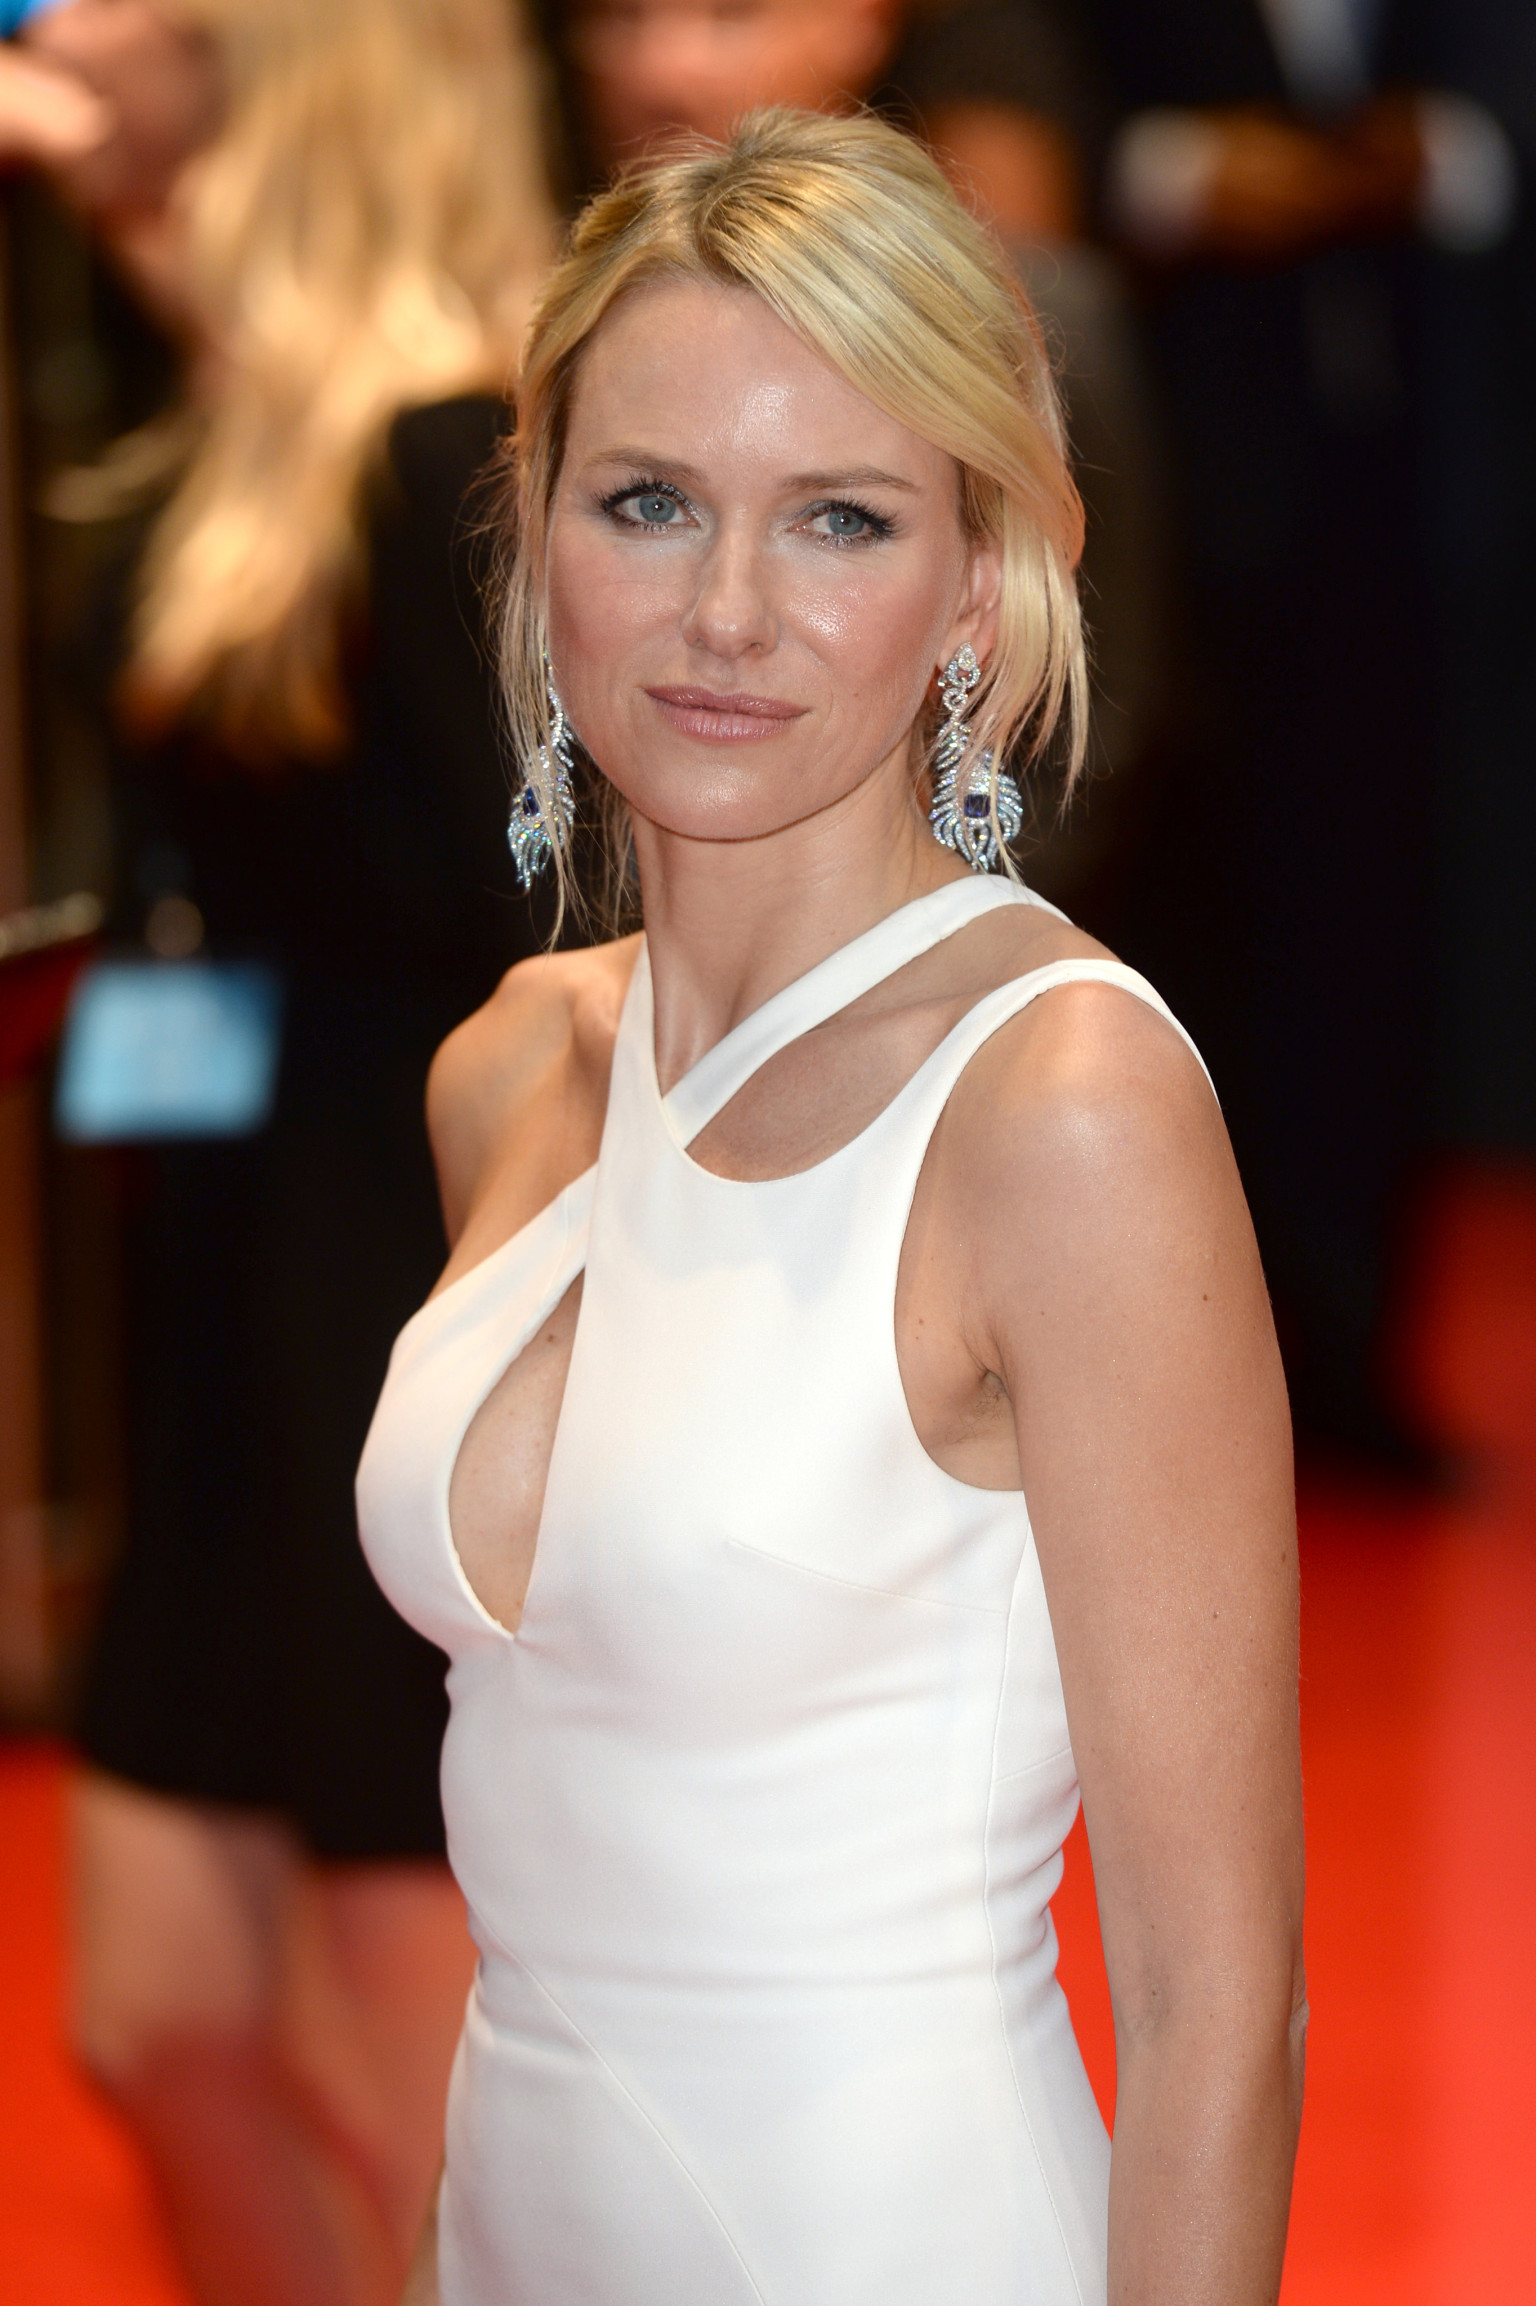 LISTEN: The Moment 'Di... Naomi Watts Facebook